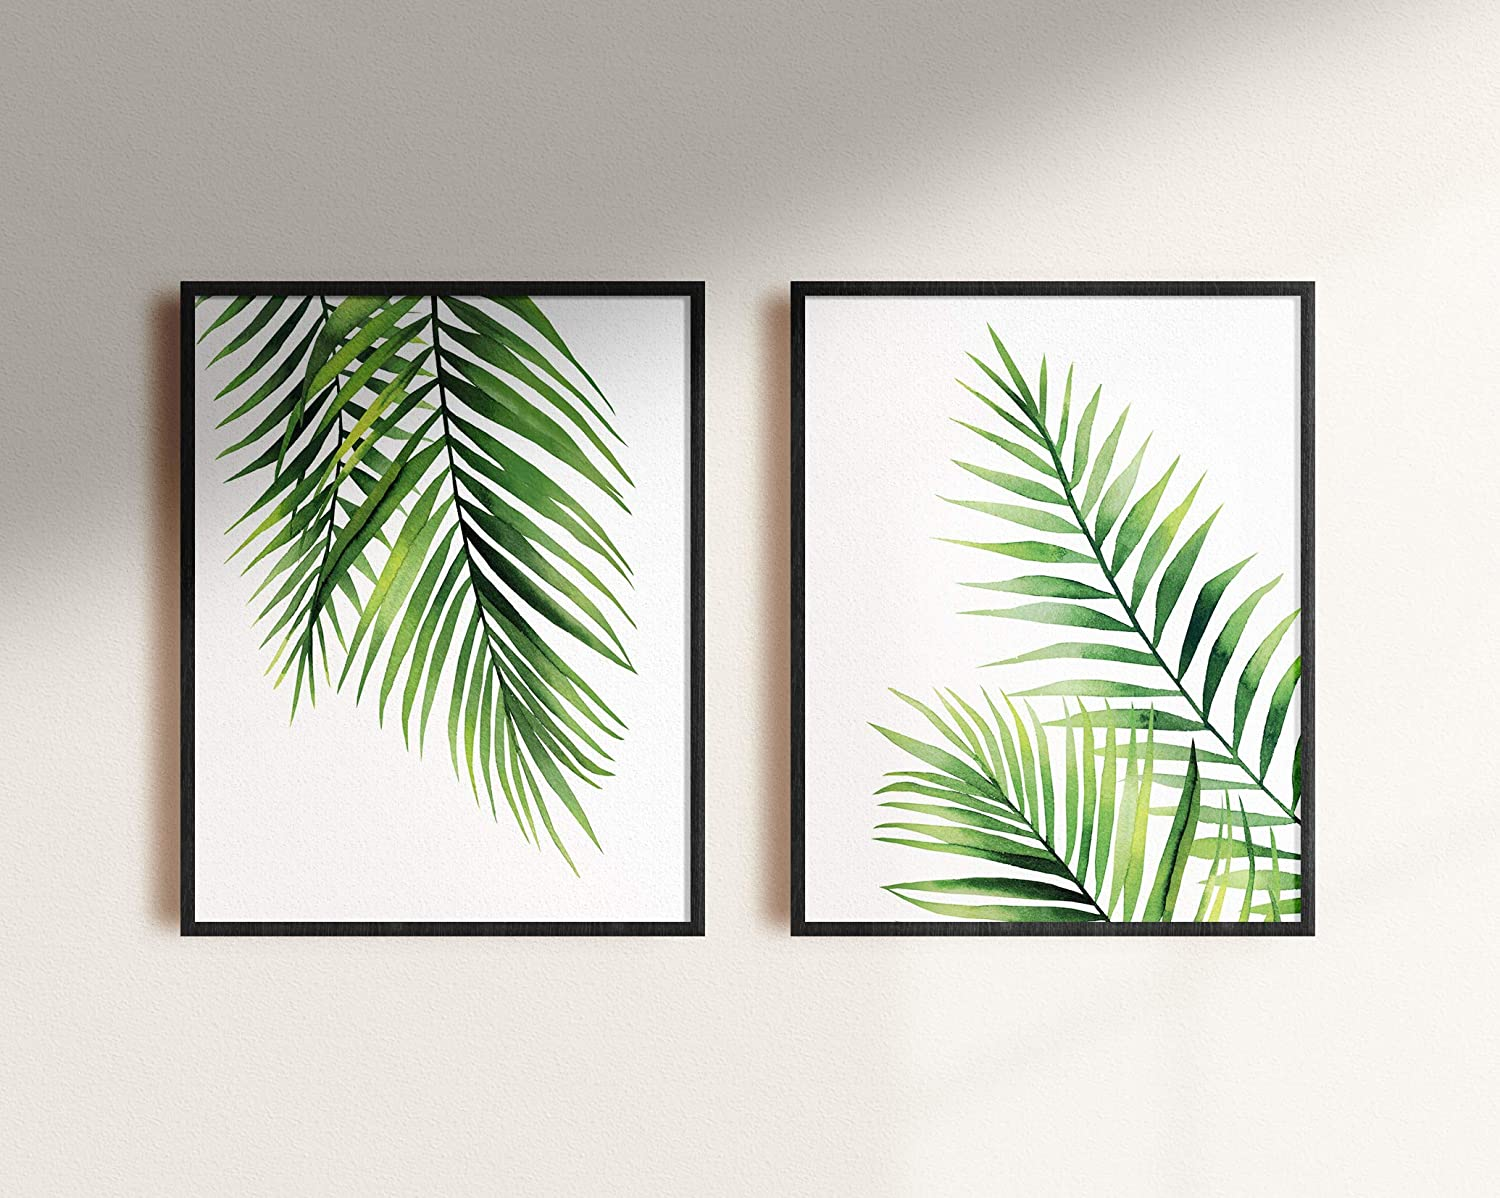 Palm Tree Leaves Poster Combo, Two Posters, 11 by 17 inches, Home Decor, Relaxing Art - Premium Matte Print by Inkvo